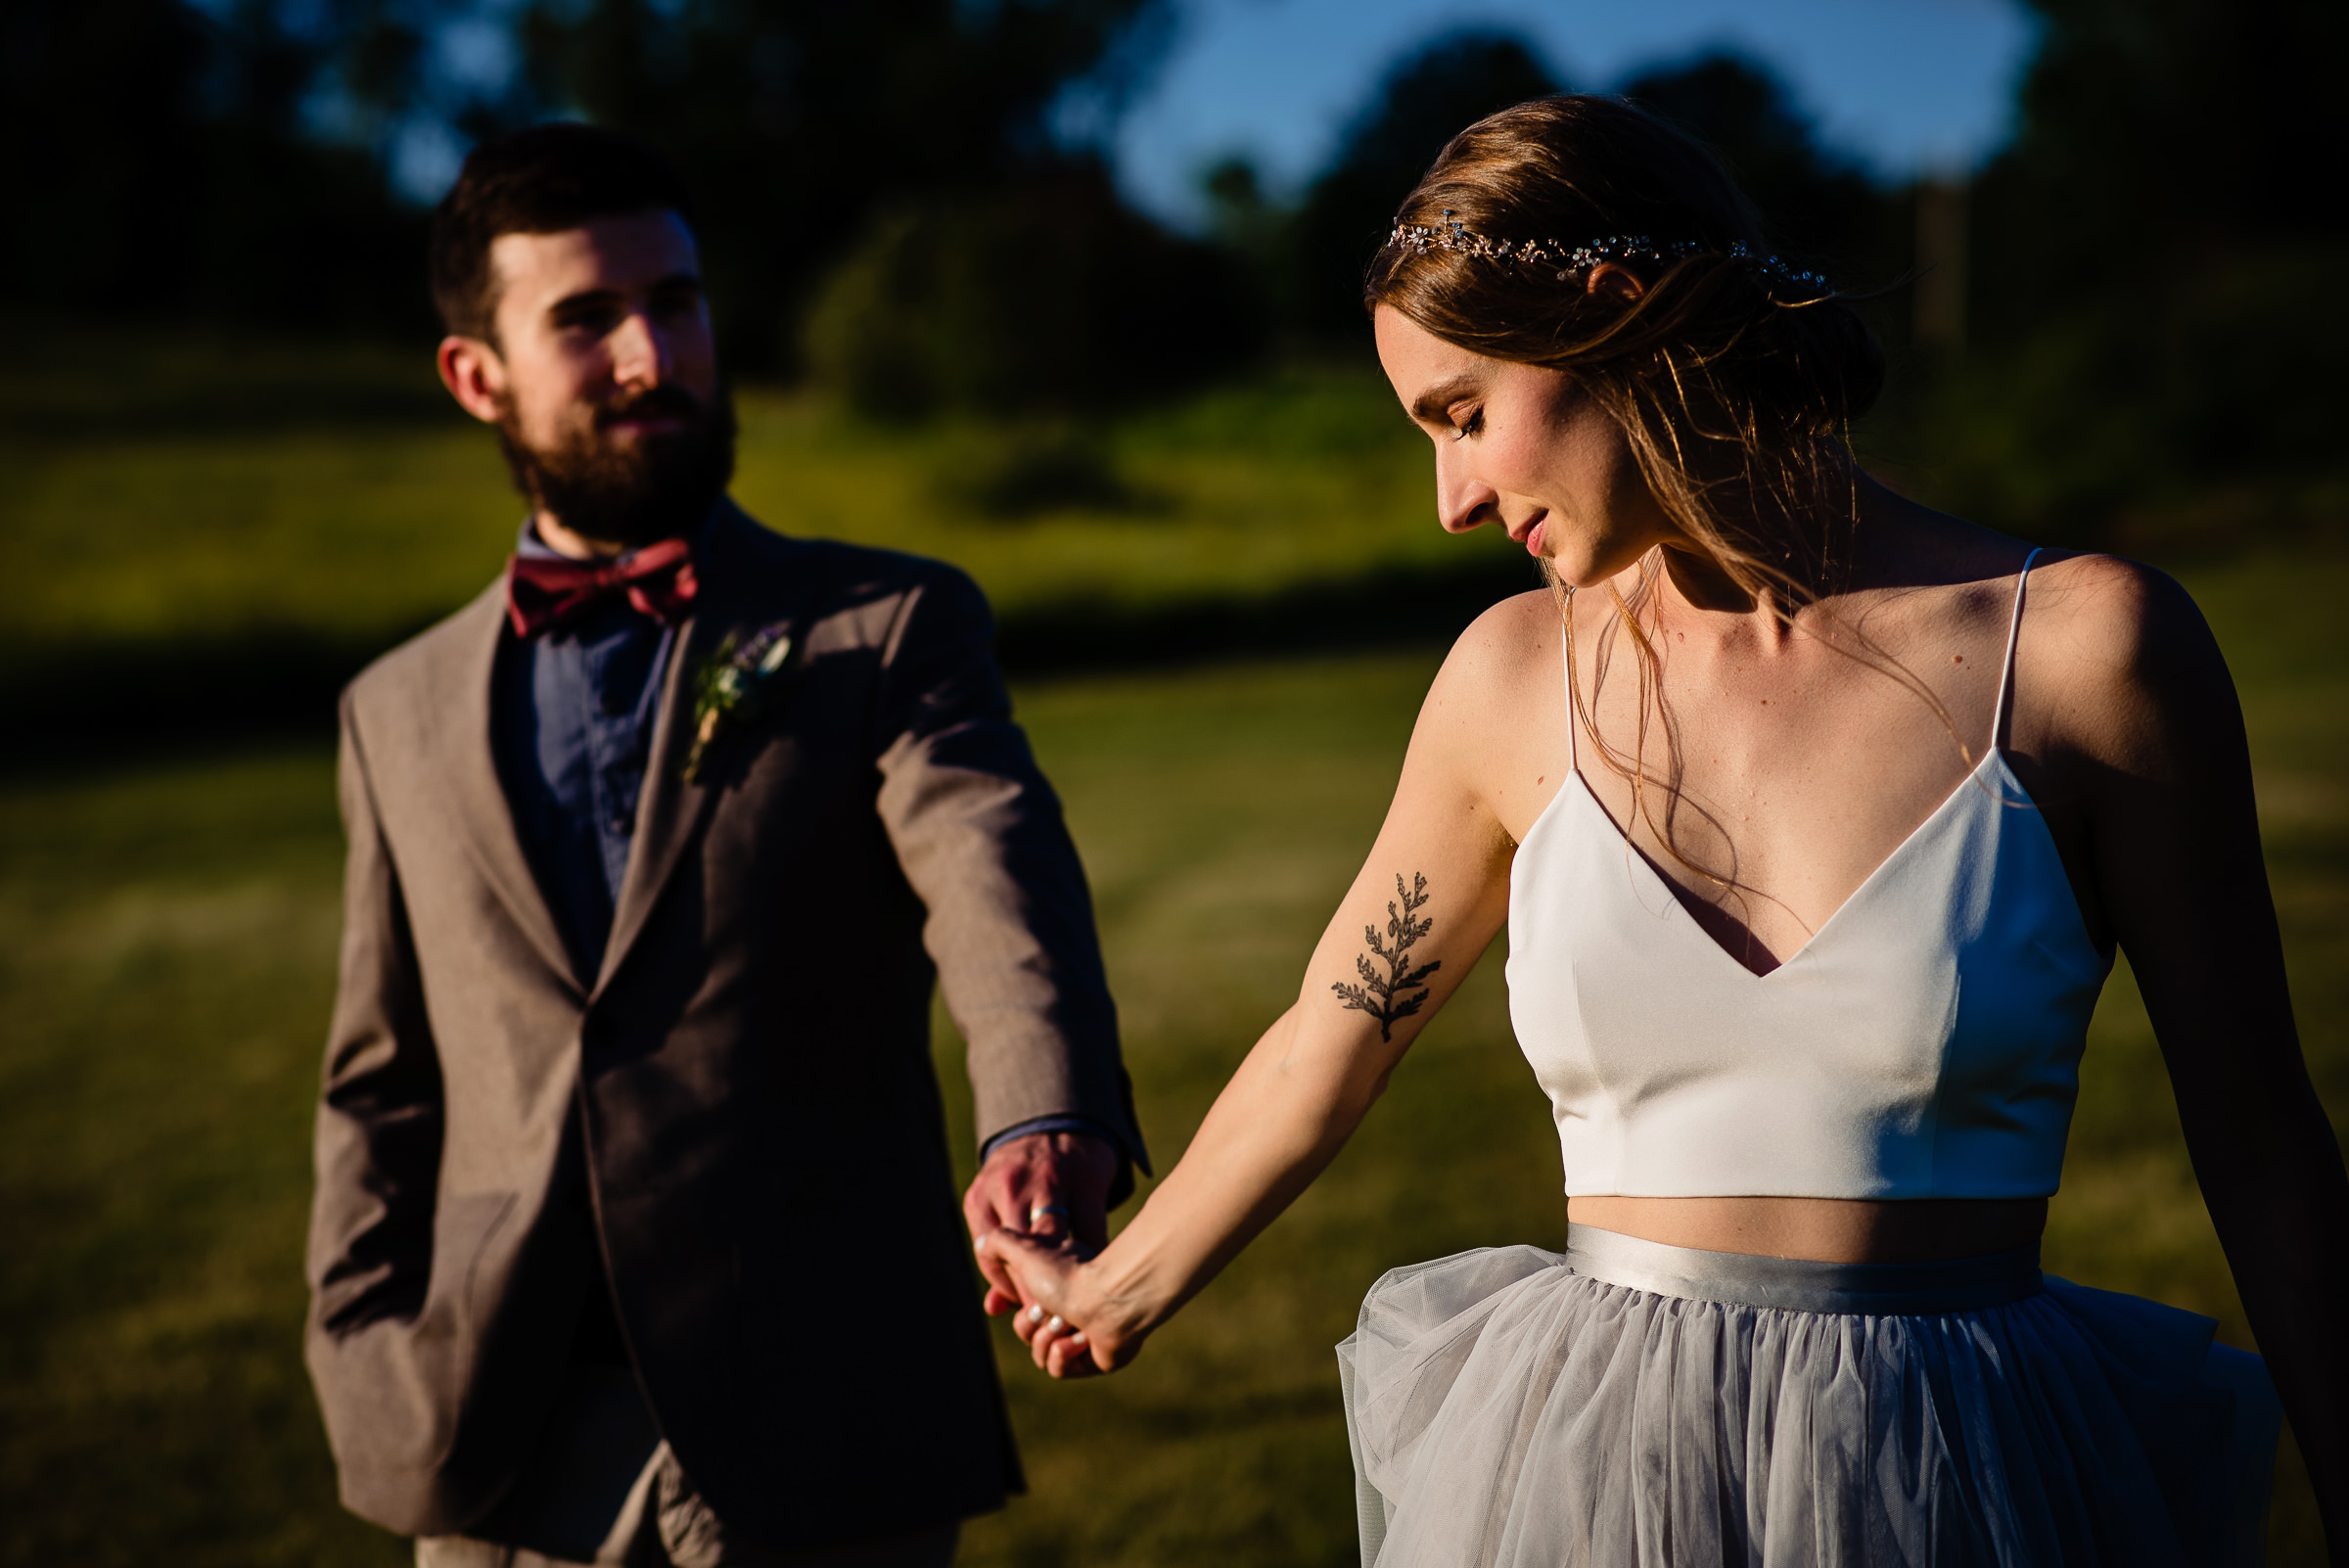 bride and groom holding hands enjoying time together- photo by Hannah Photography